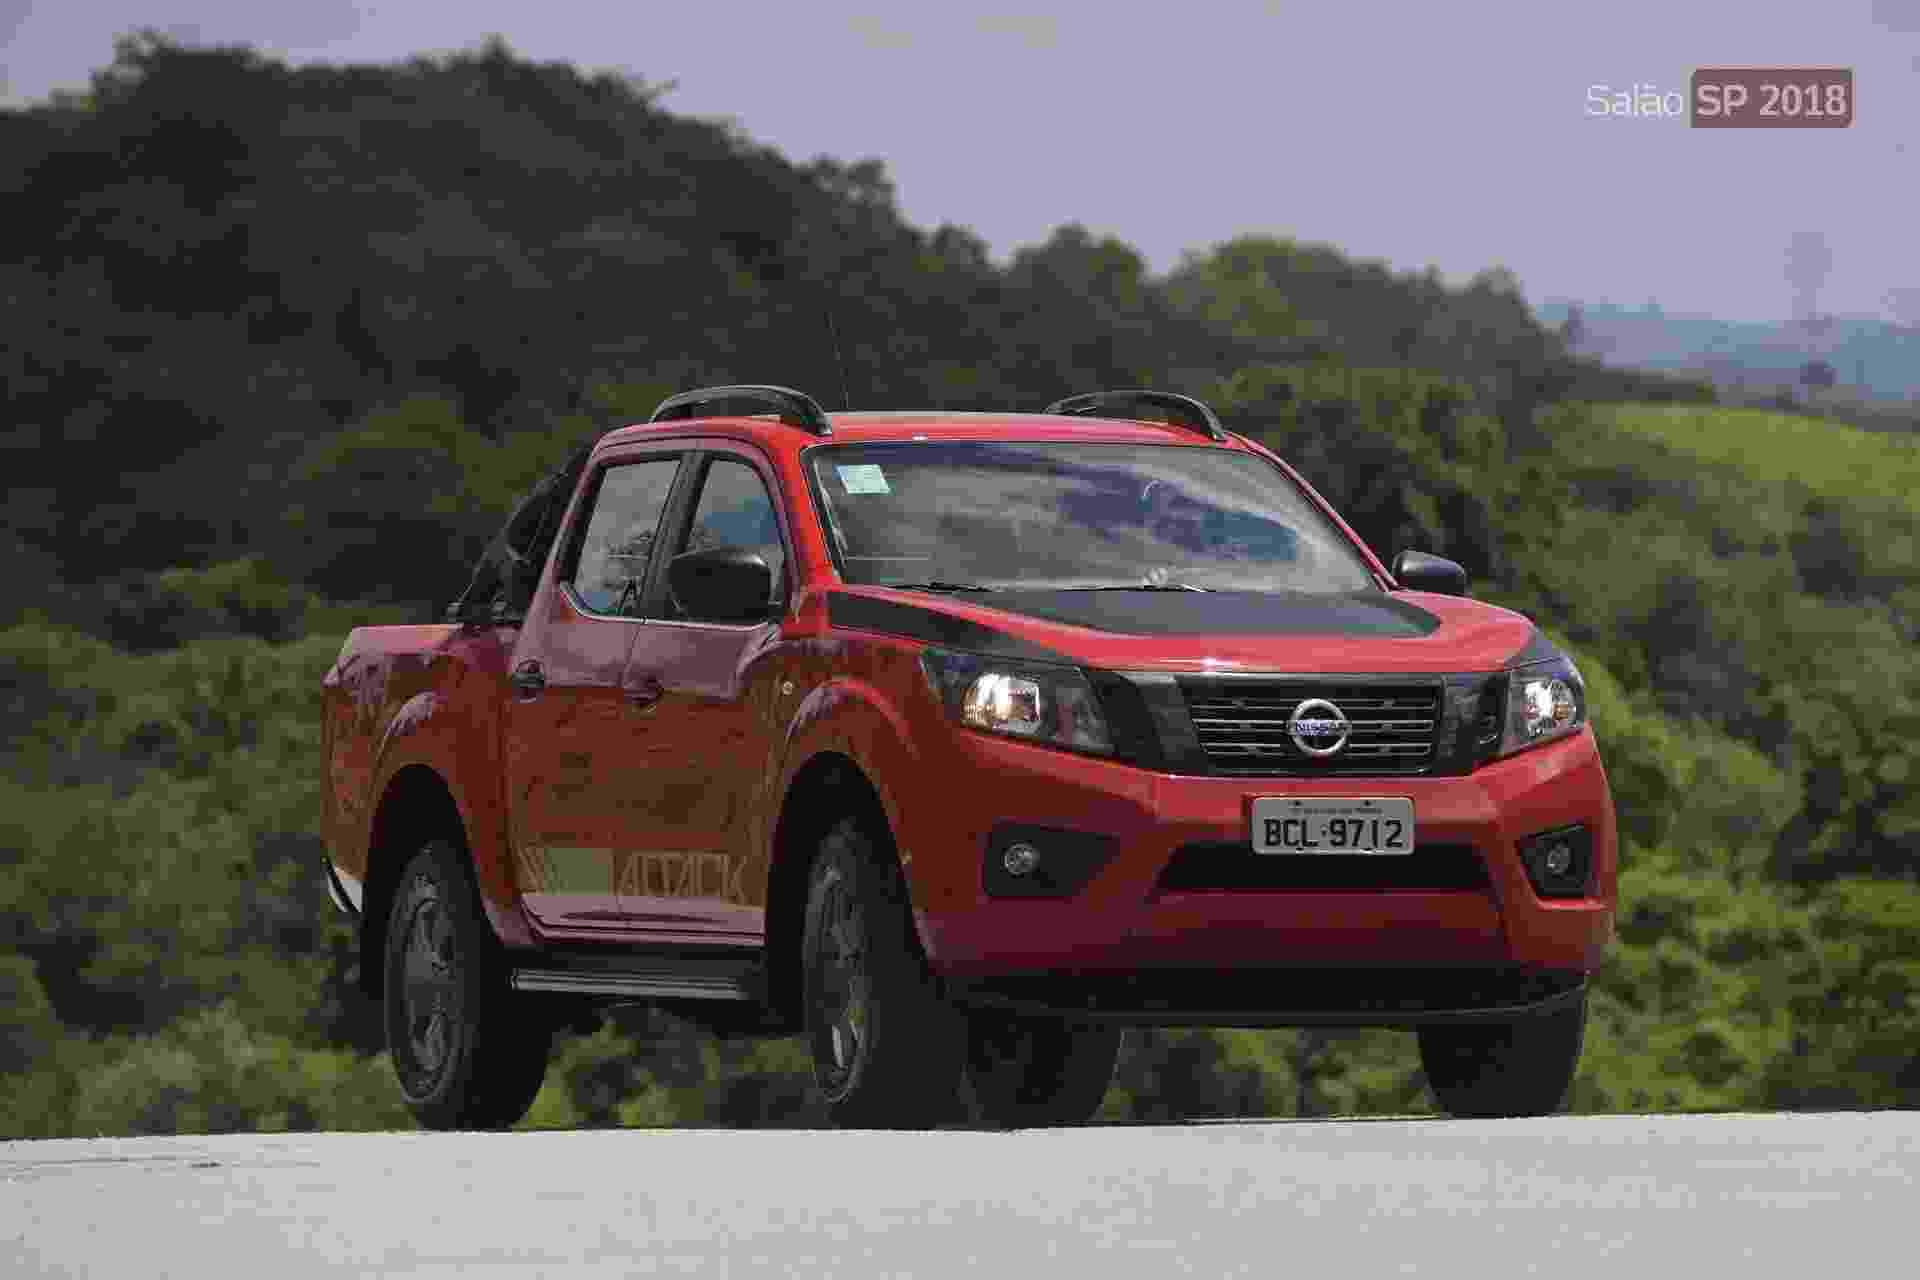 Nissan Frontier Attack - Murilo Góes/UOL